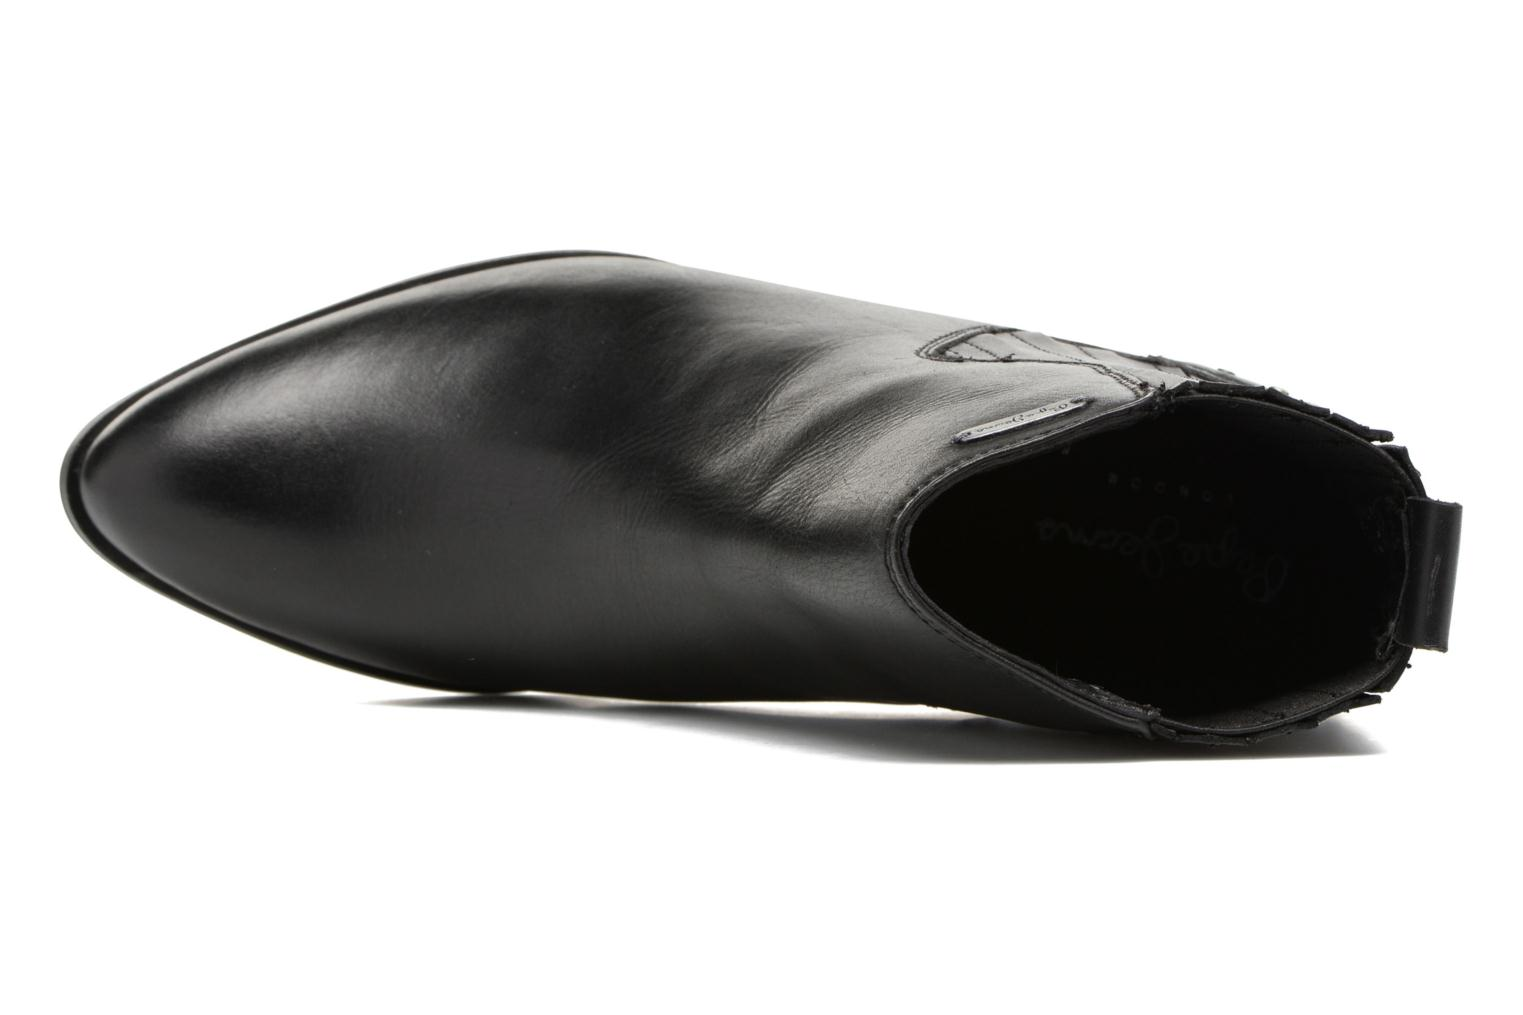 WATERLOO STRETCH Black